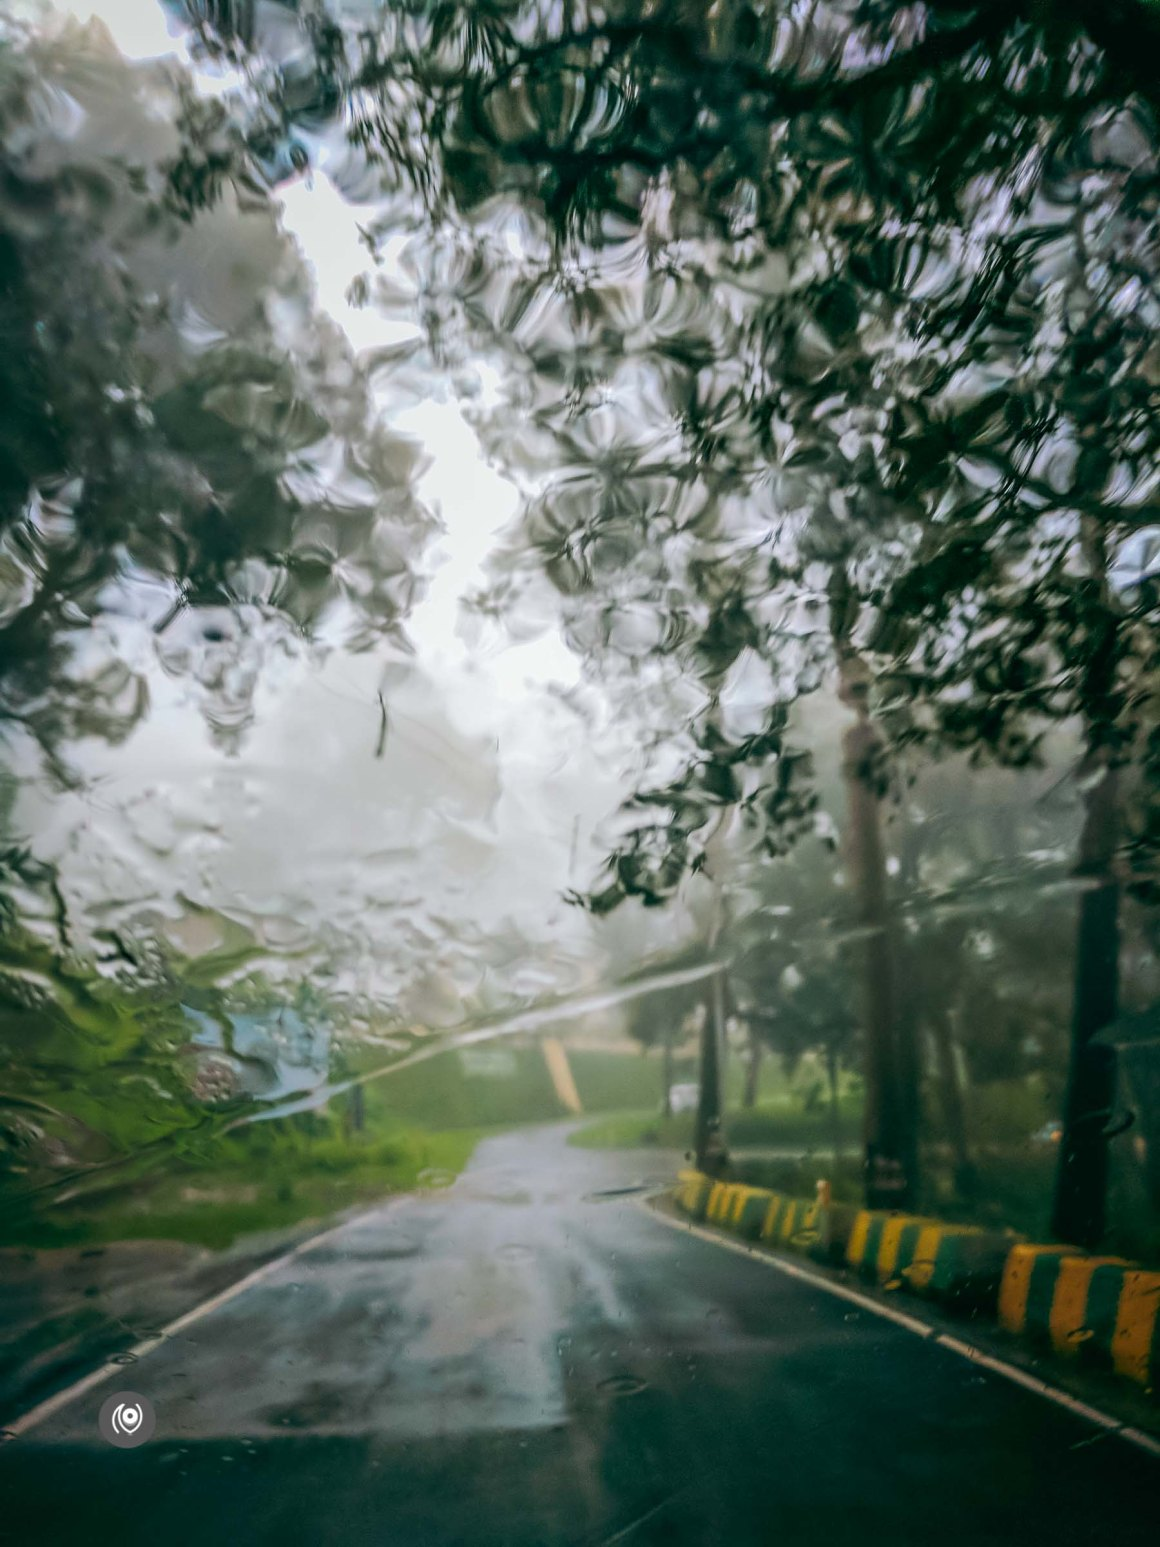 Ranikhet, Uttarakhand, EyesForDestinations, EyesForIndia, EyesForRanikhet, EyesForUttarakhand, NainaxRanikhet, Travel Photographer, Destination Photographer, Travel Photography, Destination Photography, Resort, Hospitality, Lifestyle, Travel Blogger, Lifestyle Blogger, Vacation, Road Trip, India, Professional Photographer, Luxury, Lifestyle, Blogger, Feature, Story